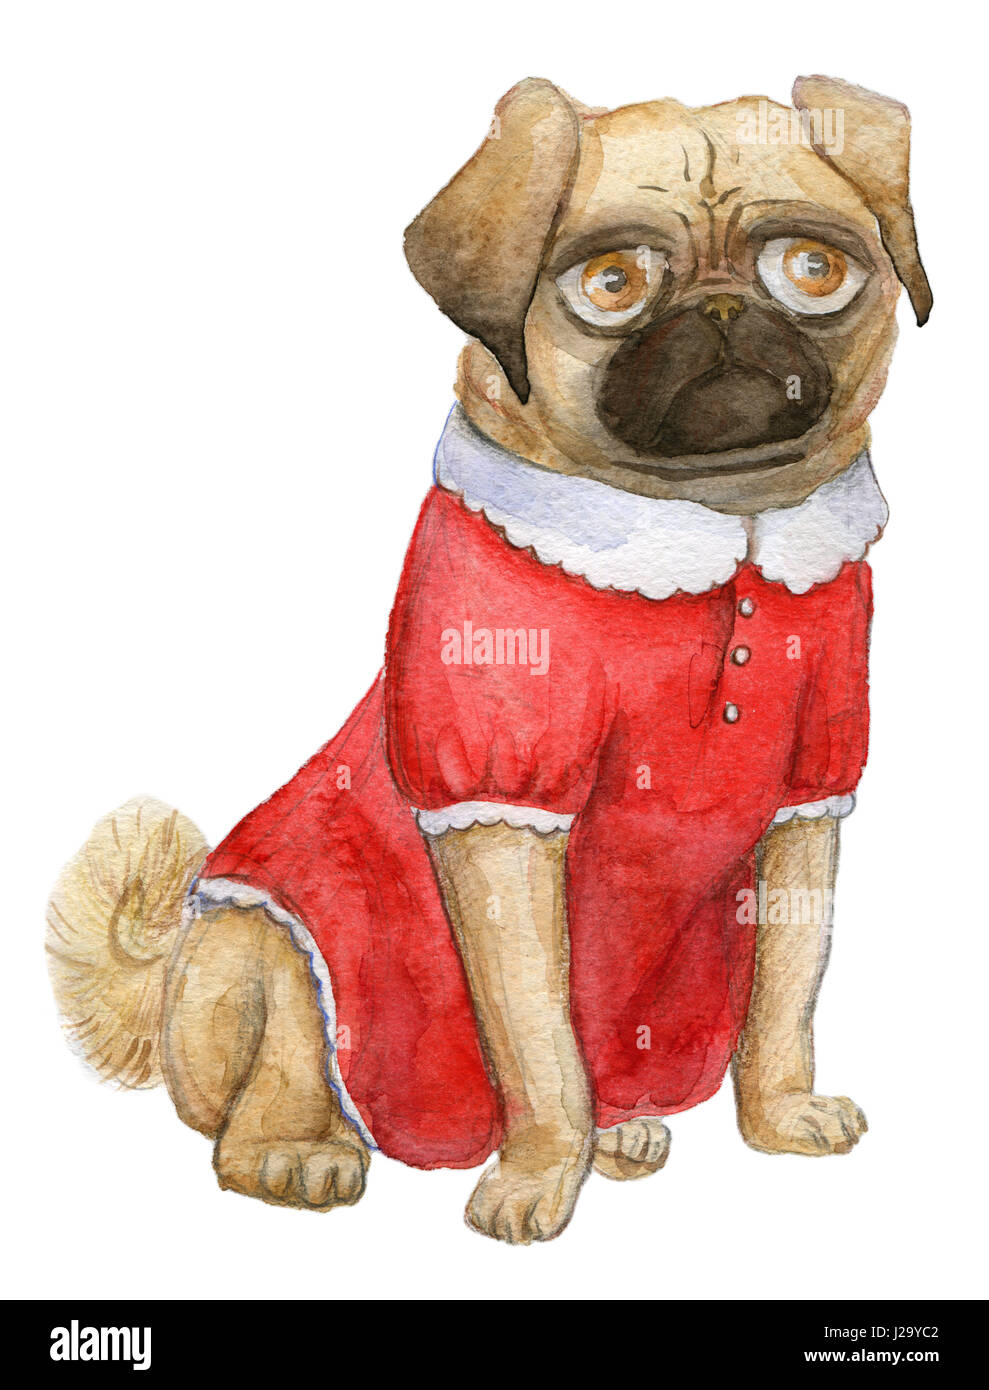 a Pug portrait, mops girl, cutie pug-dog in a cute red dress - Stock Image